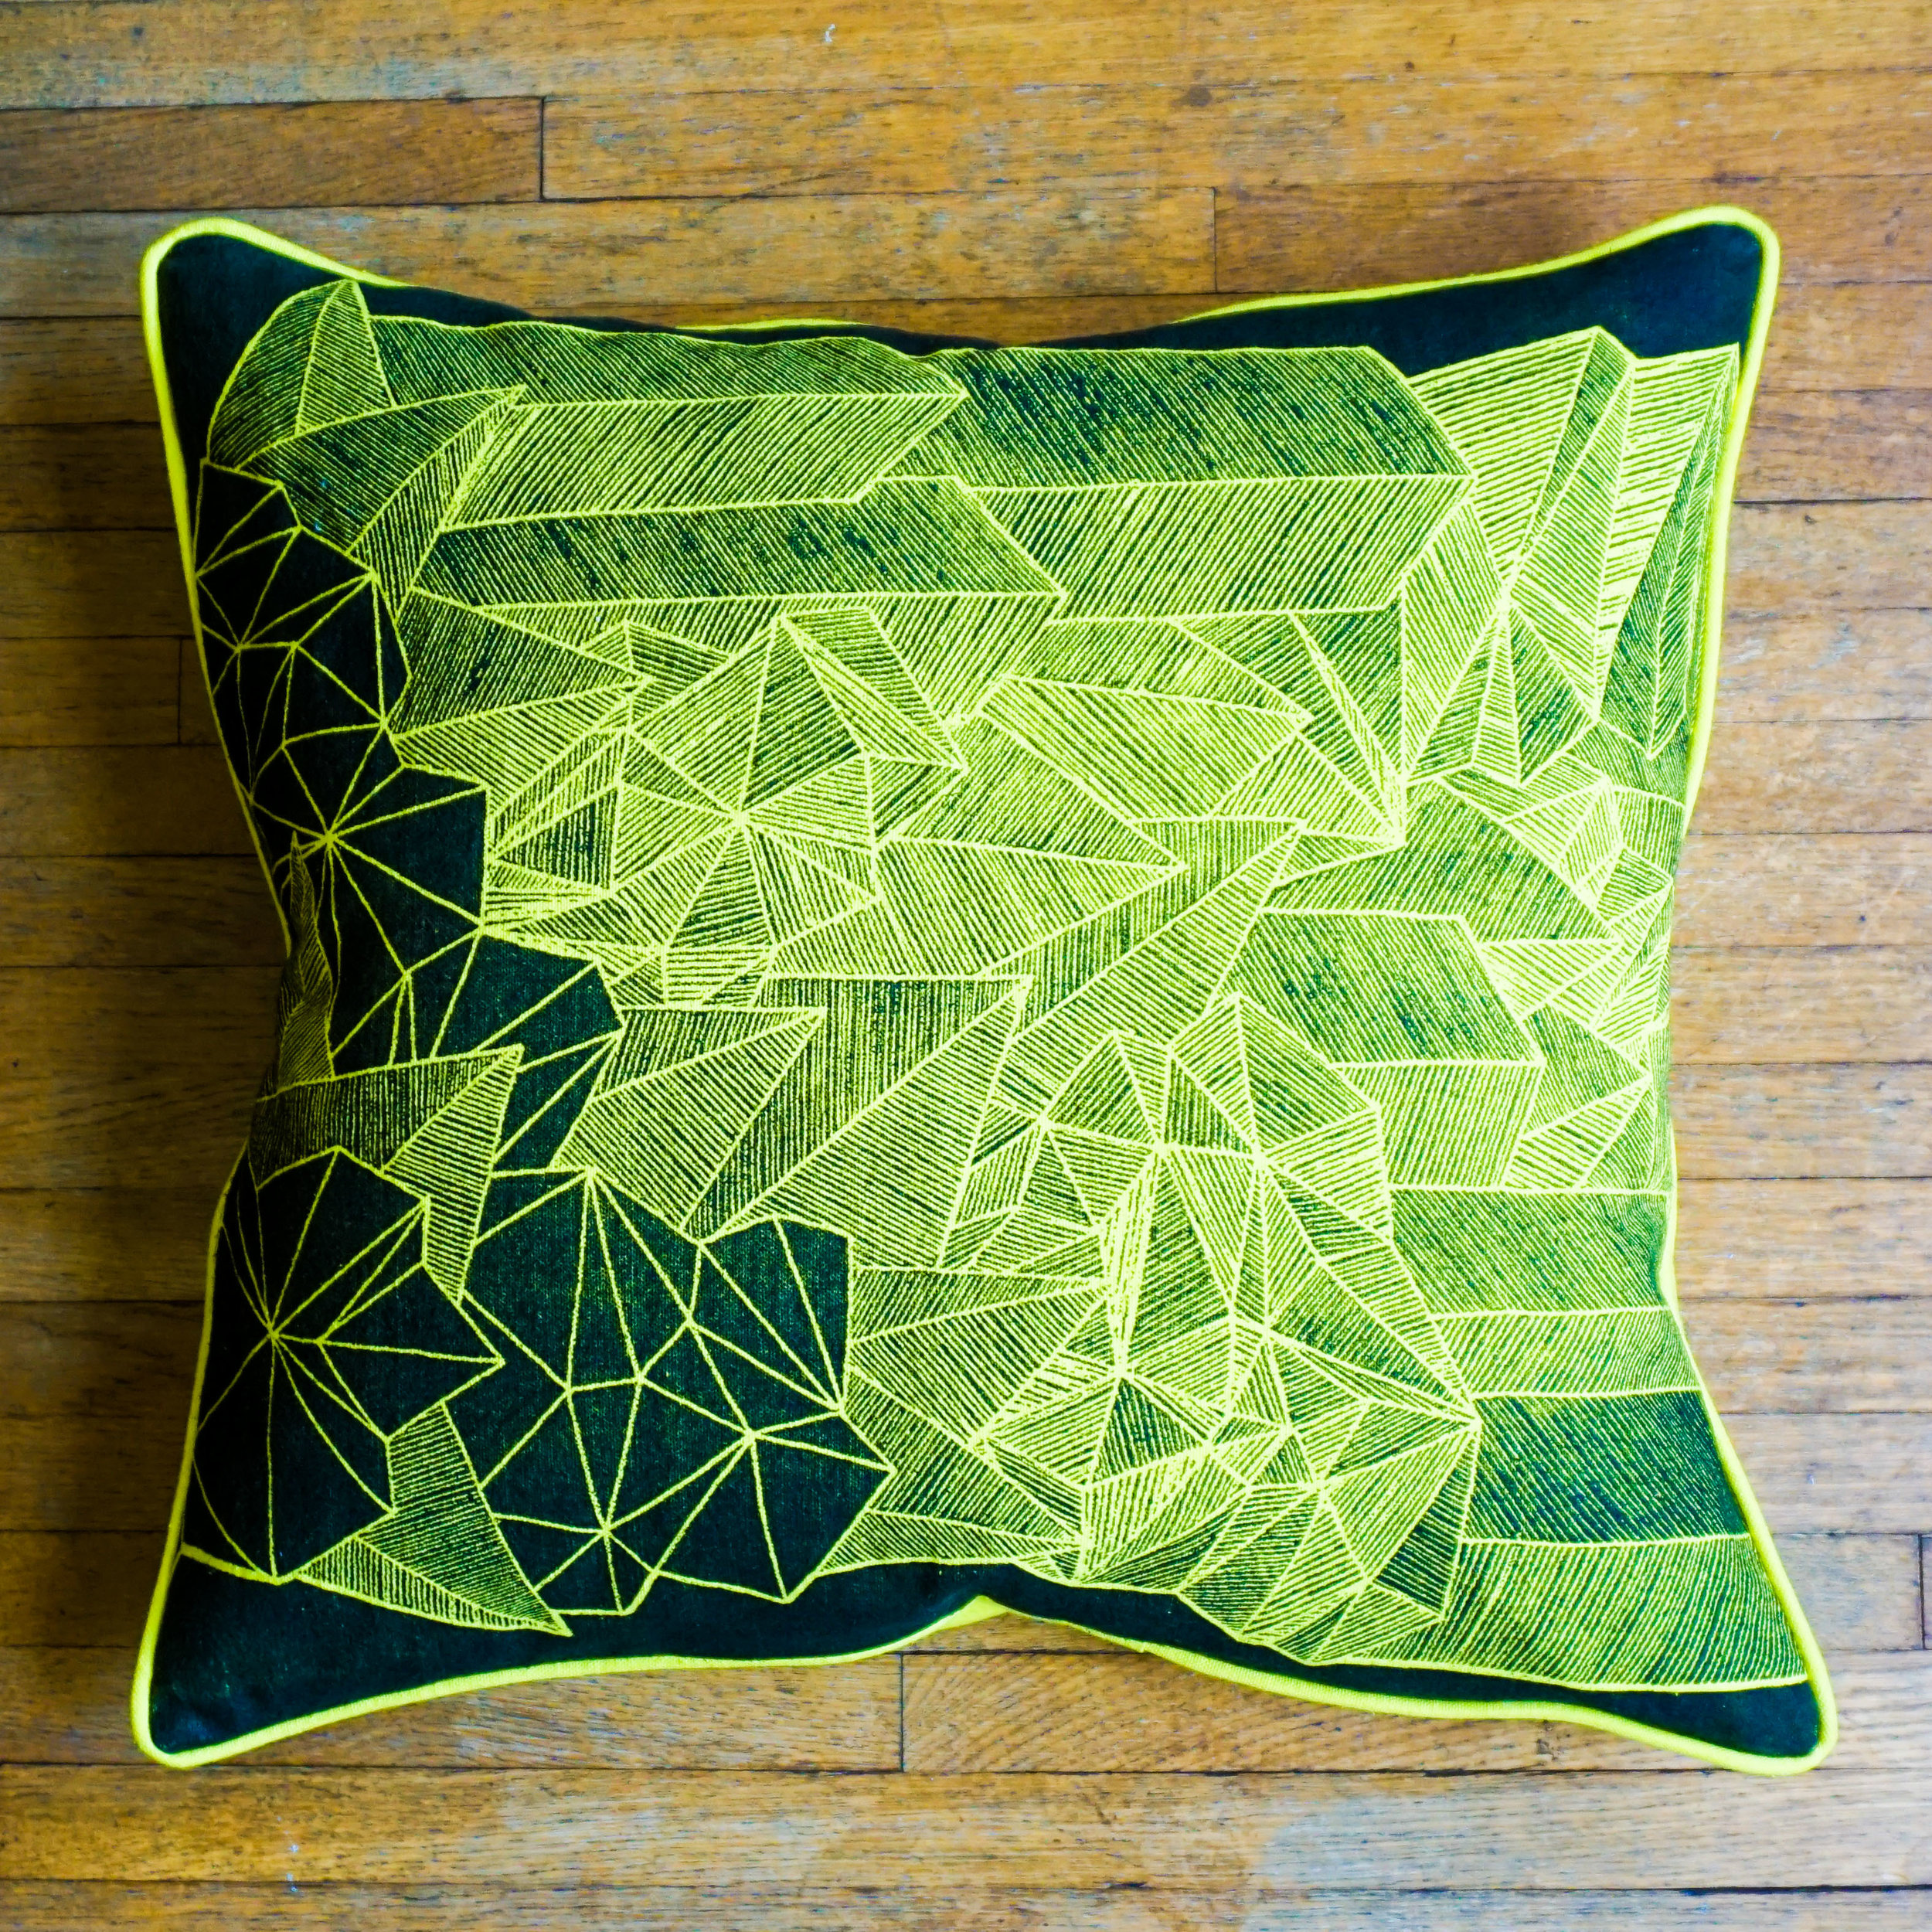 Downtown Sprawl Pillow is filled with kapok seed fiber.  Click above to check it out further!